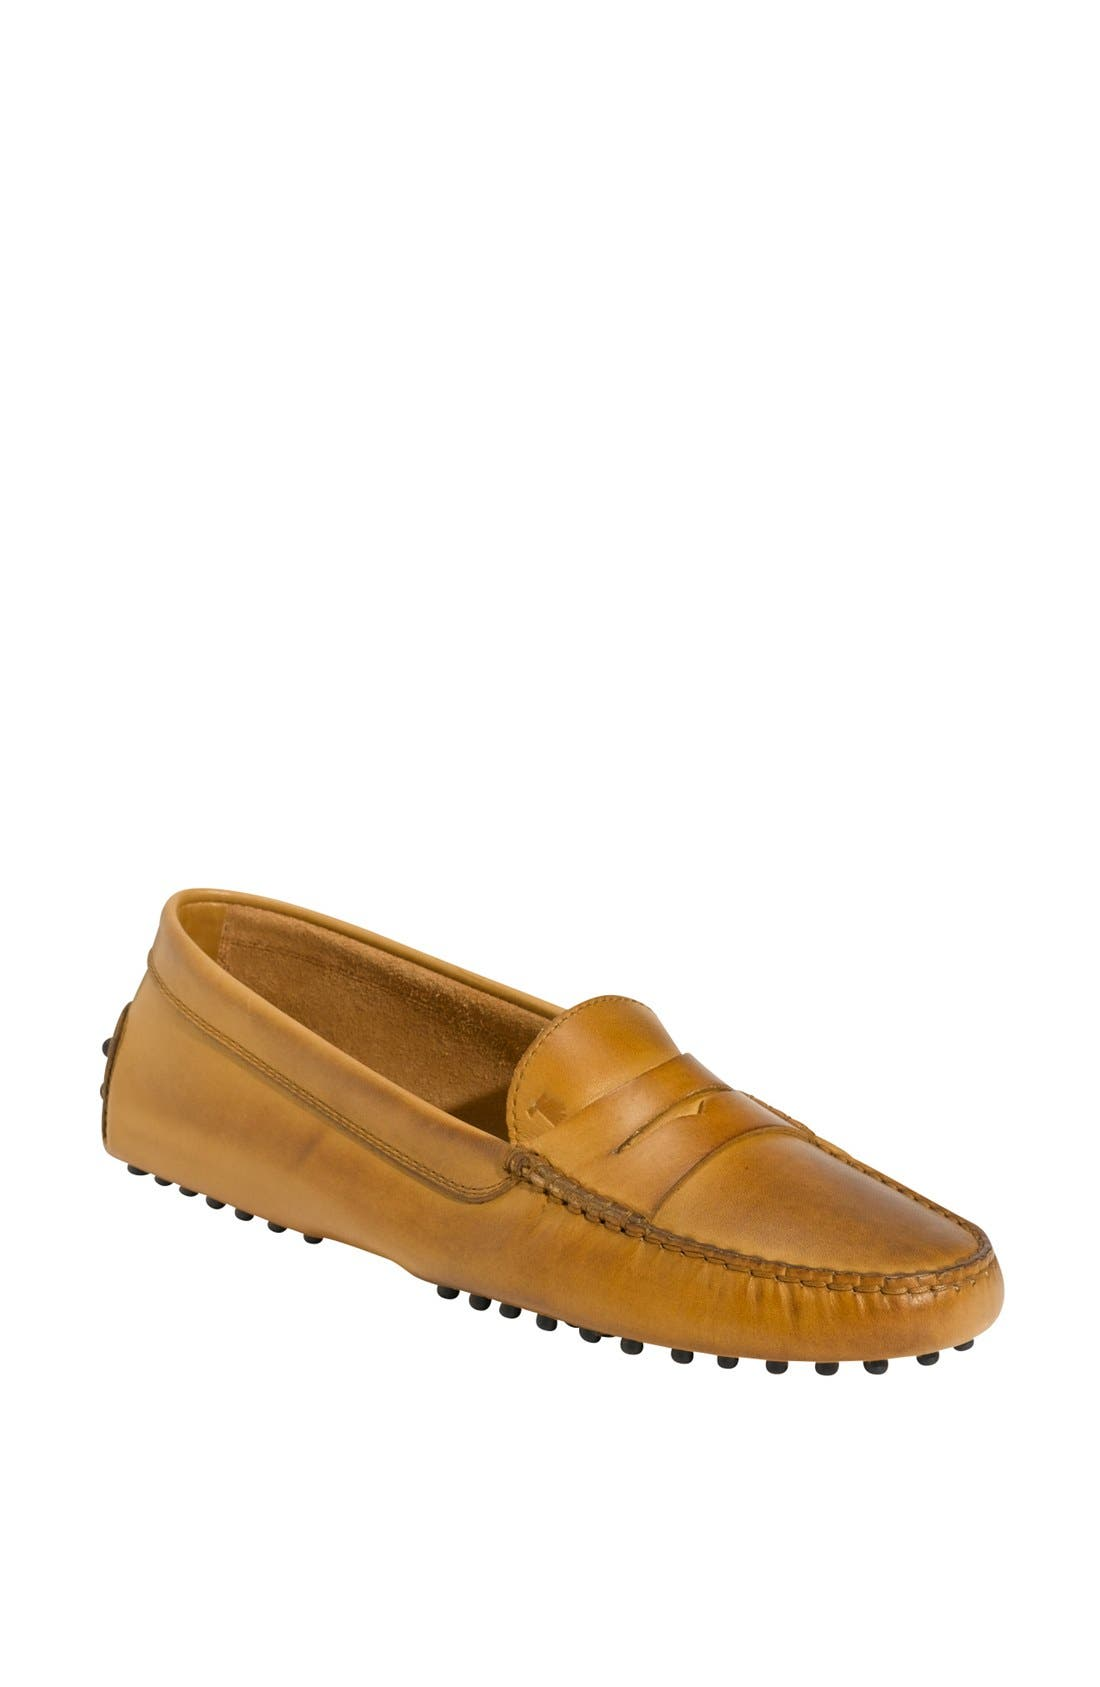 Gommini Leather Drivers Loafer in Brown